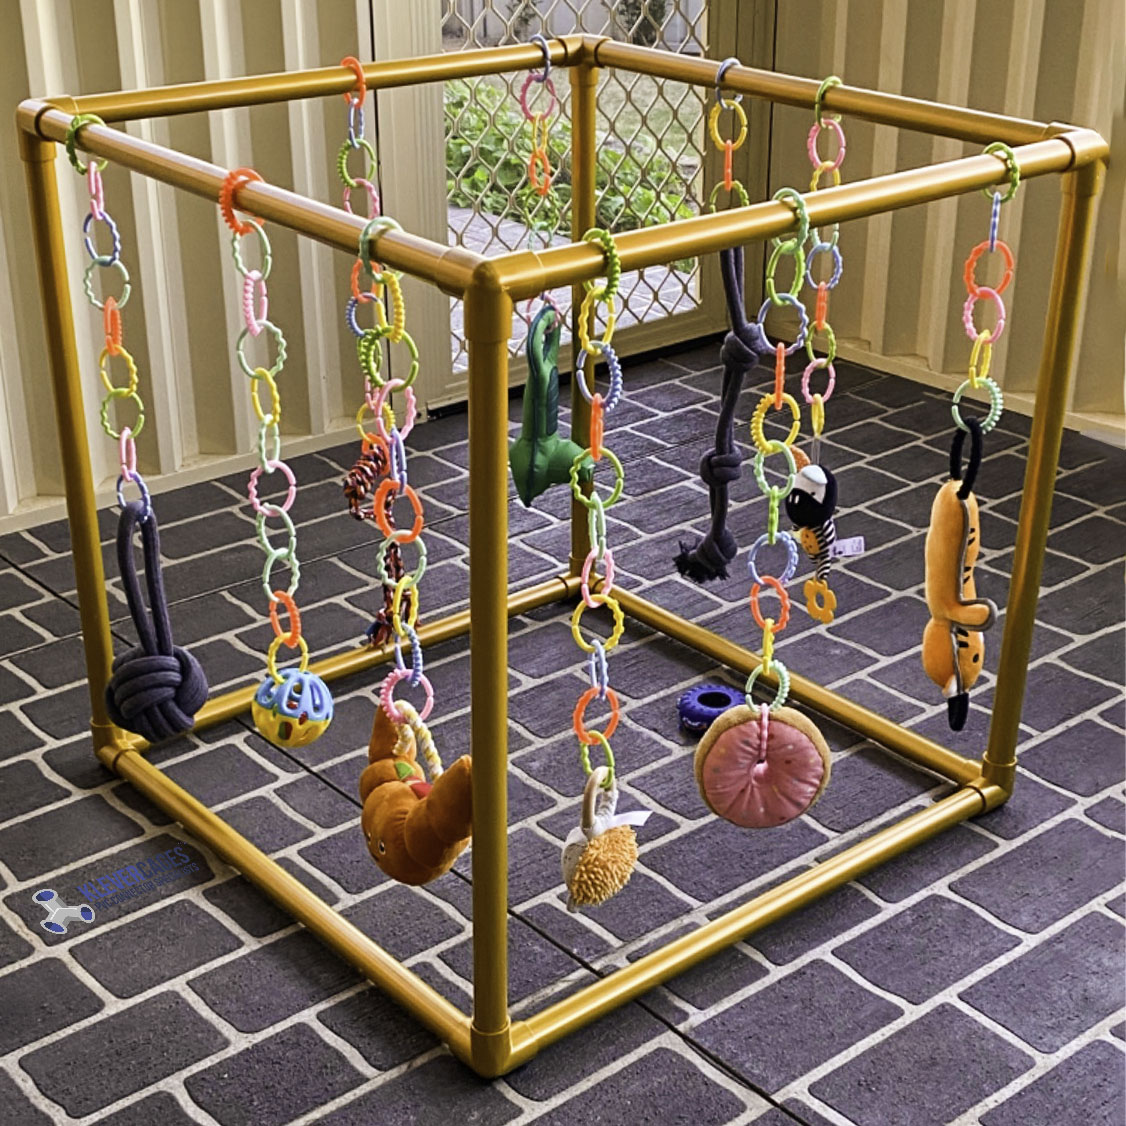 Build your own puppy, cat play cub, box, activity centre from 3 way PVC connectors and PVC pipe, then hang your  fur-babies favourite toys from the frame